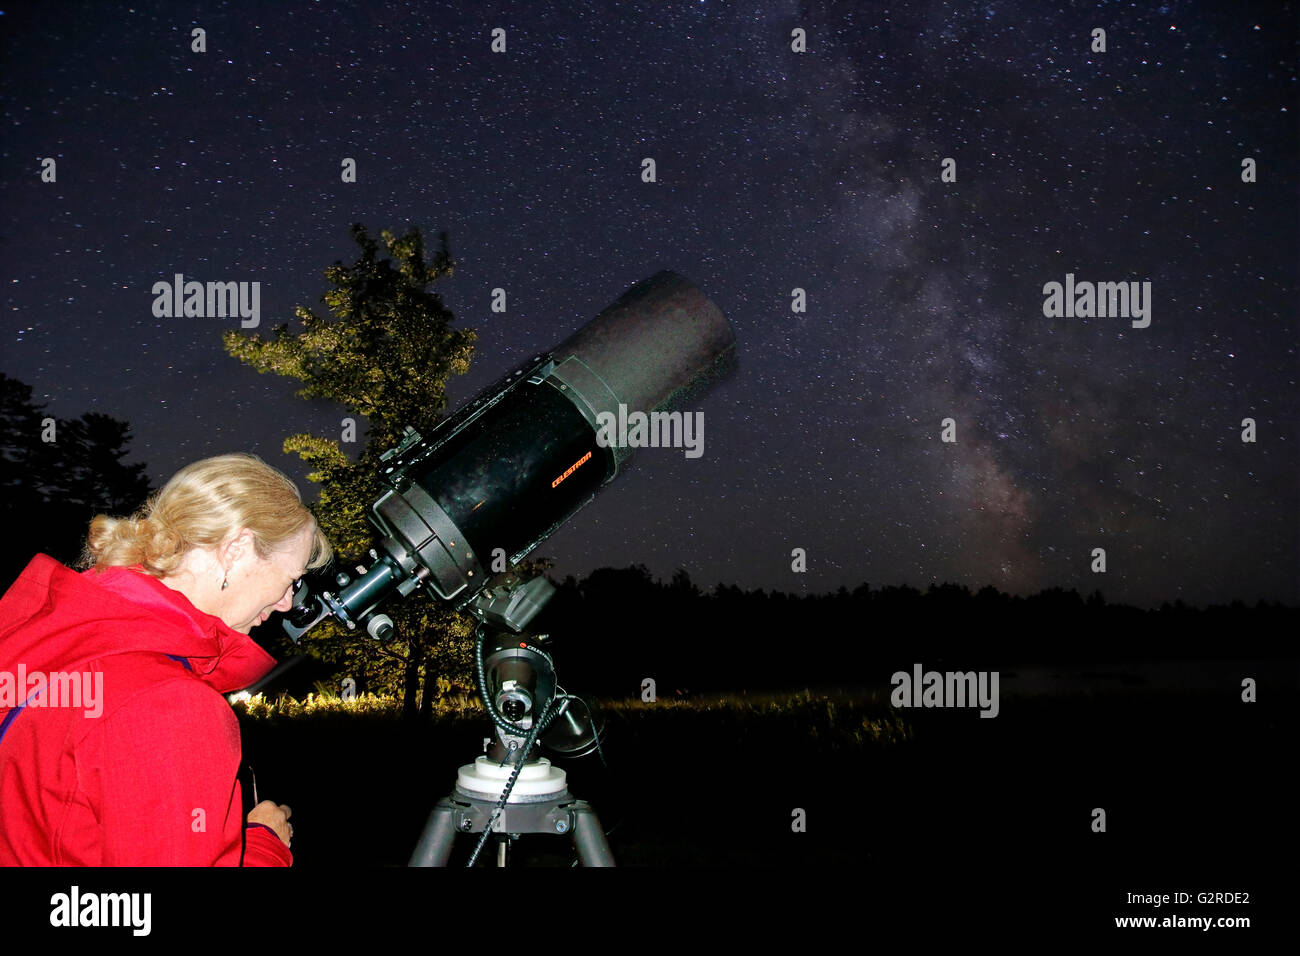 A woman looking at the stars and planets through a telescope - Stock Image